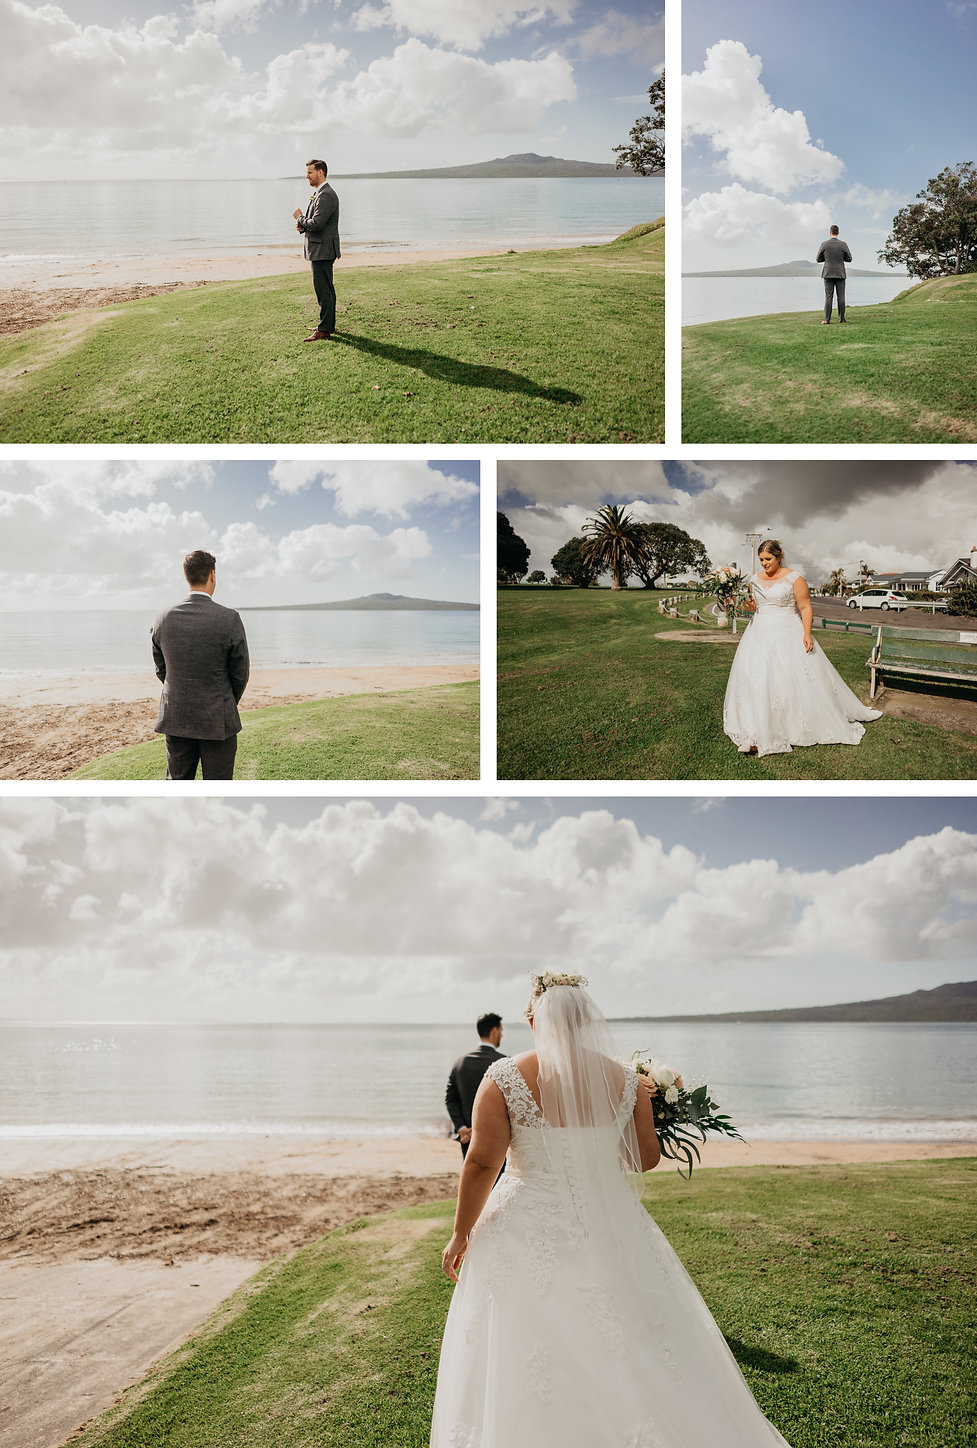 first look bridal photos at narrow neck beach in auckland new zealand captured by wanderlusting lovers